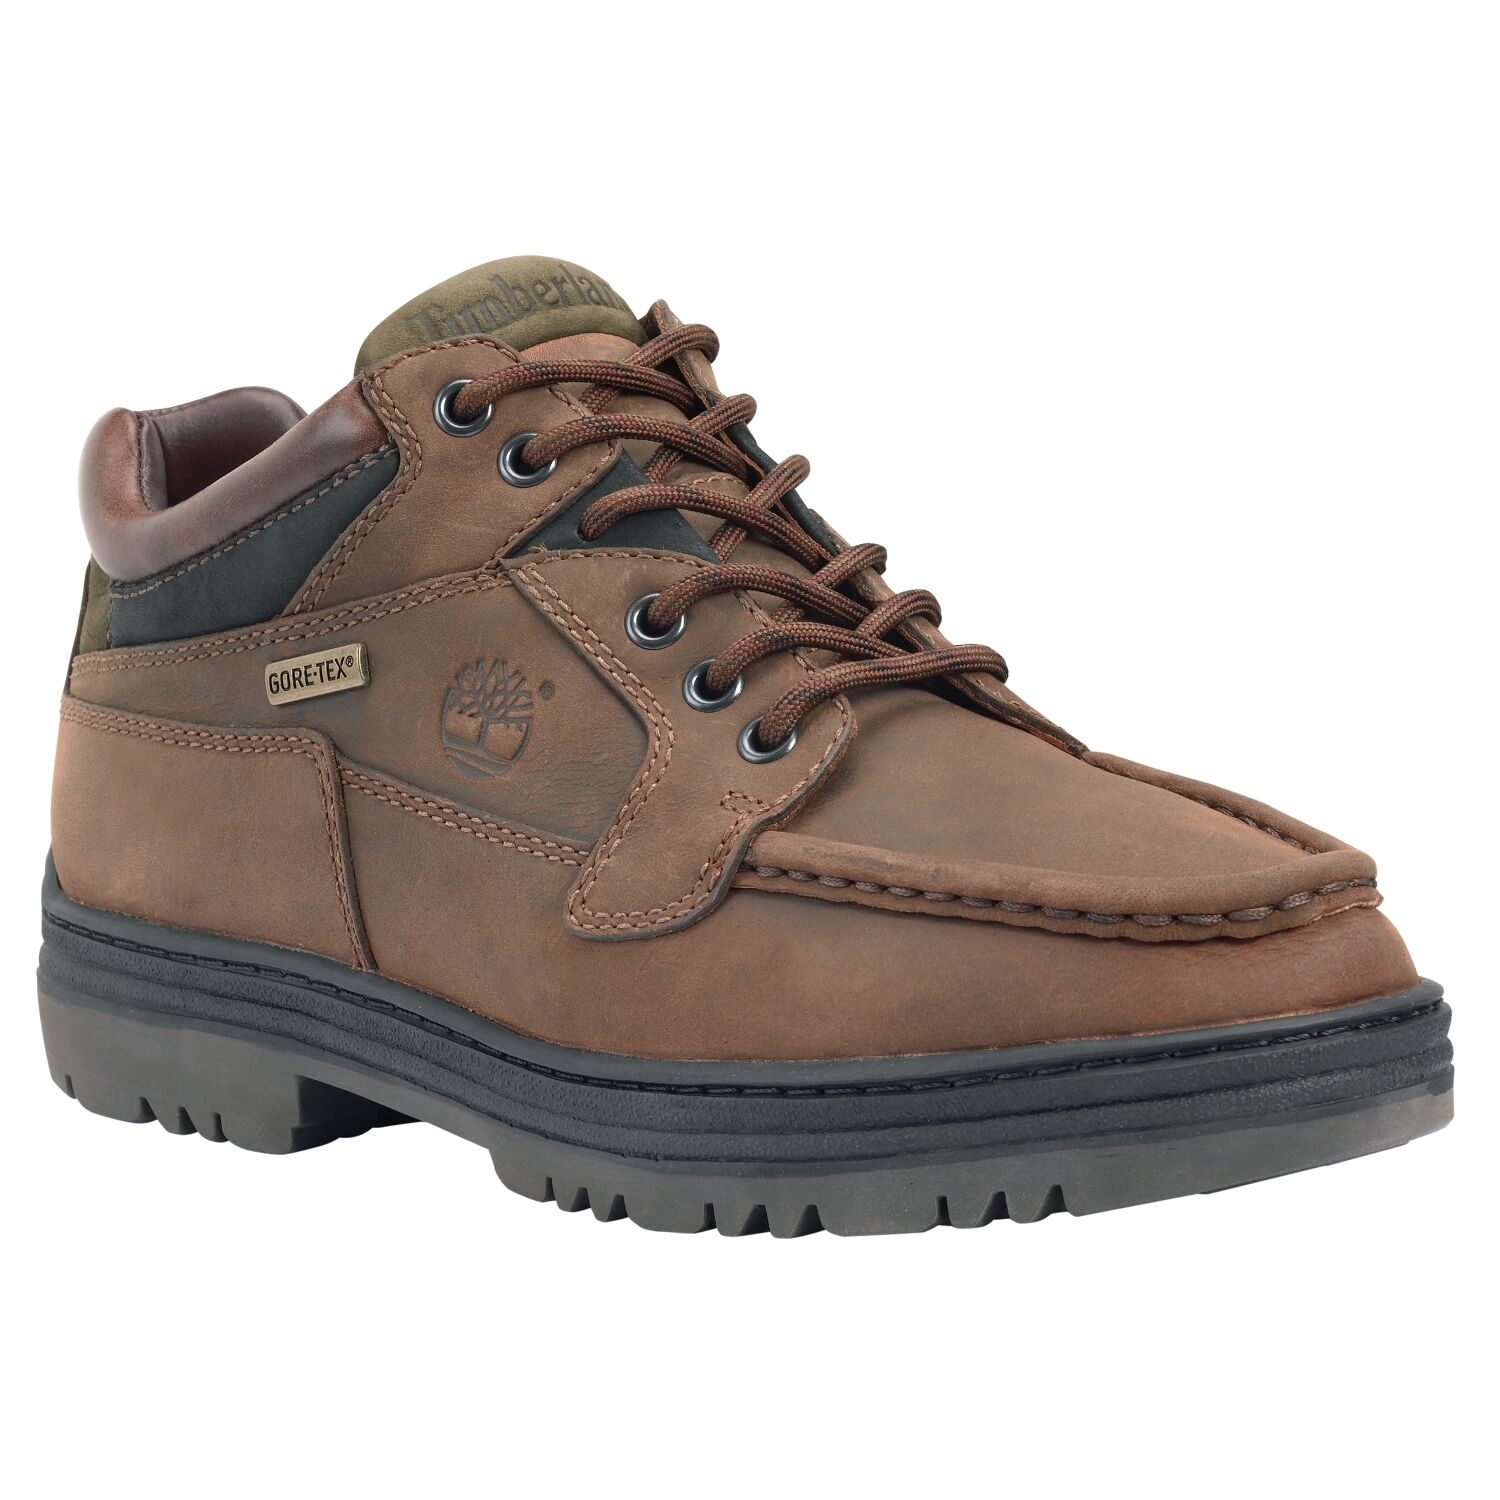 pastel Cooperativa sangrado  Timberland Mens Icon Chukka Gore-Tex Waterproof Leather Boots / Shoes 37042  for sale online